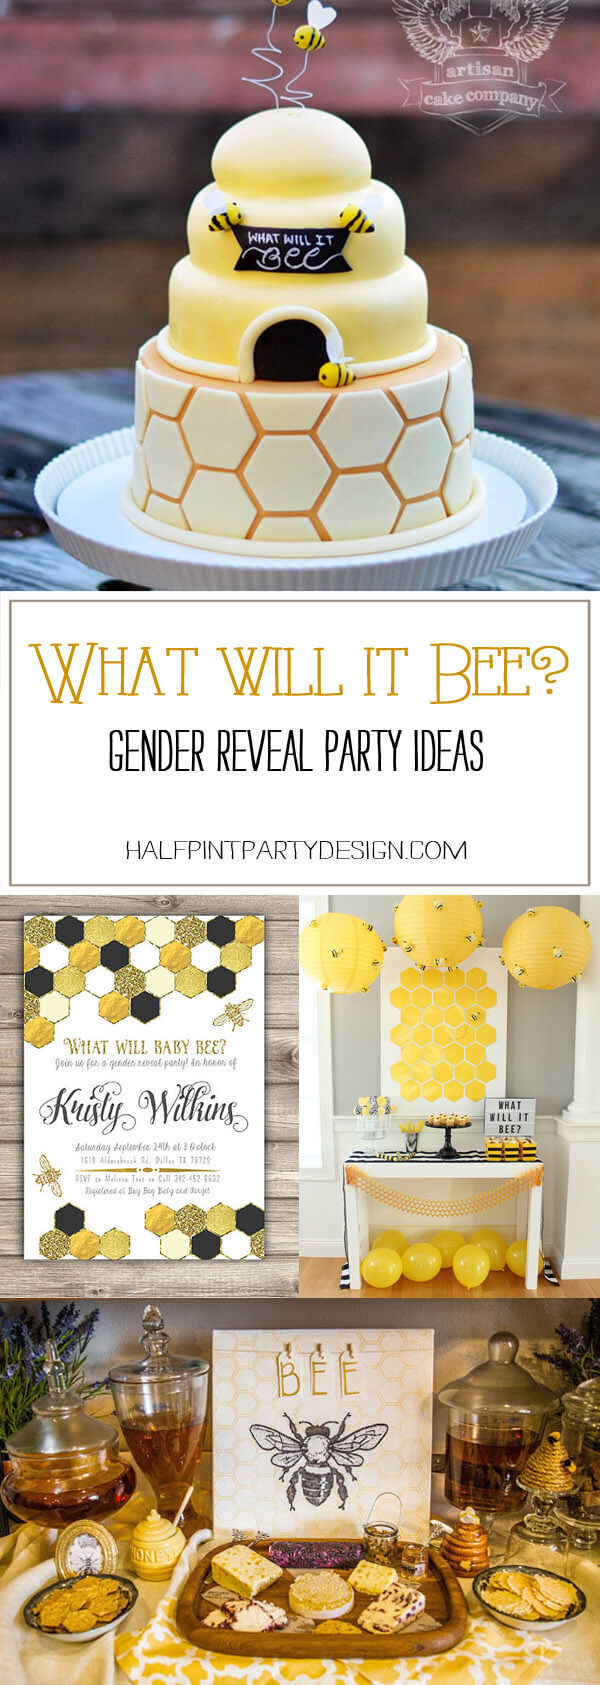 Collage of bee themed party ideas for a What Will It Bee? Gender reveal party